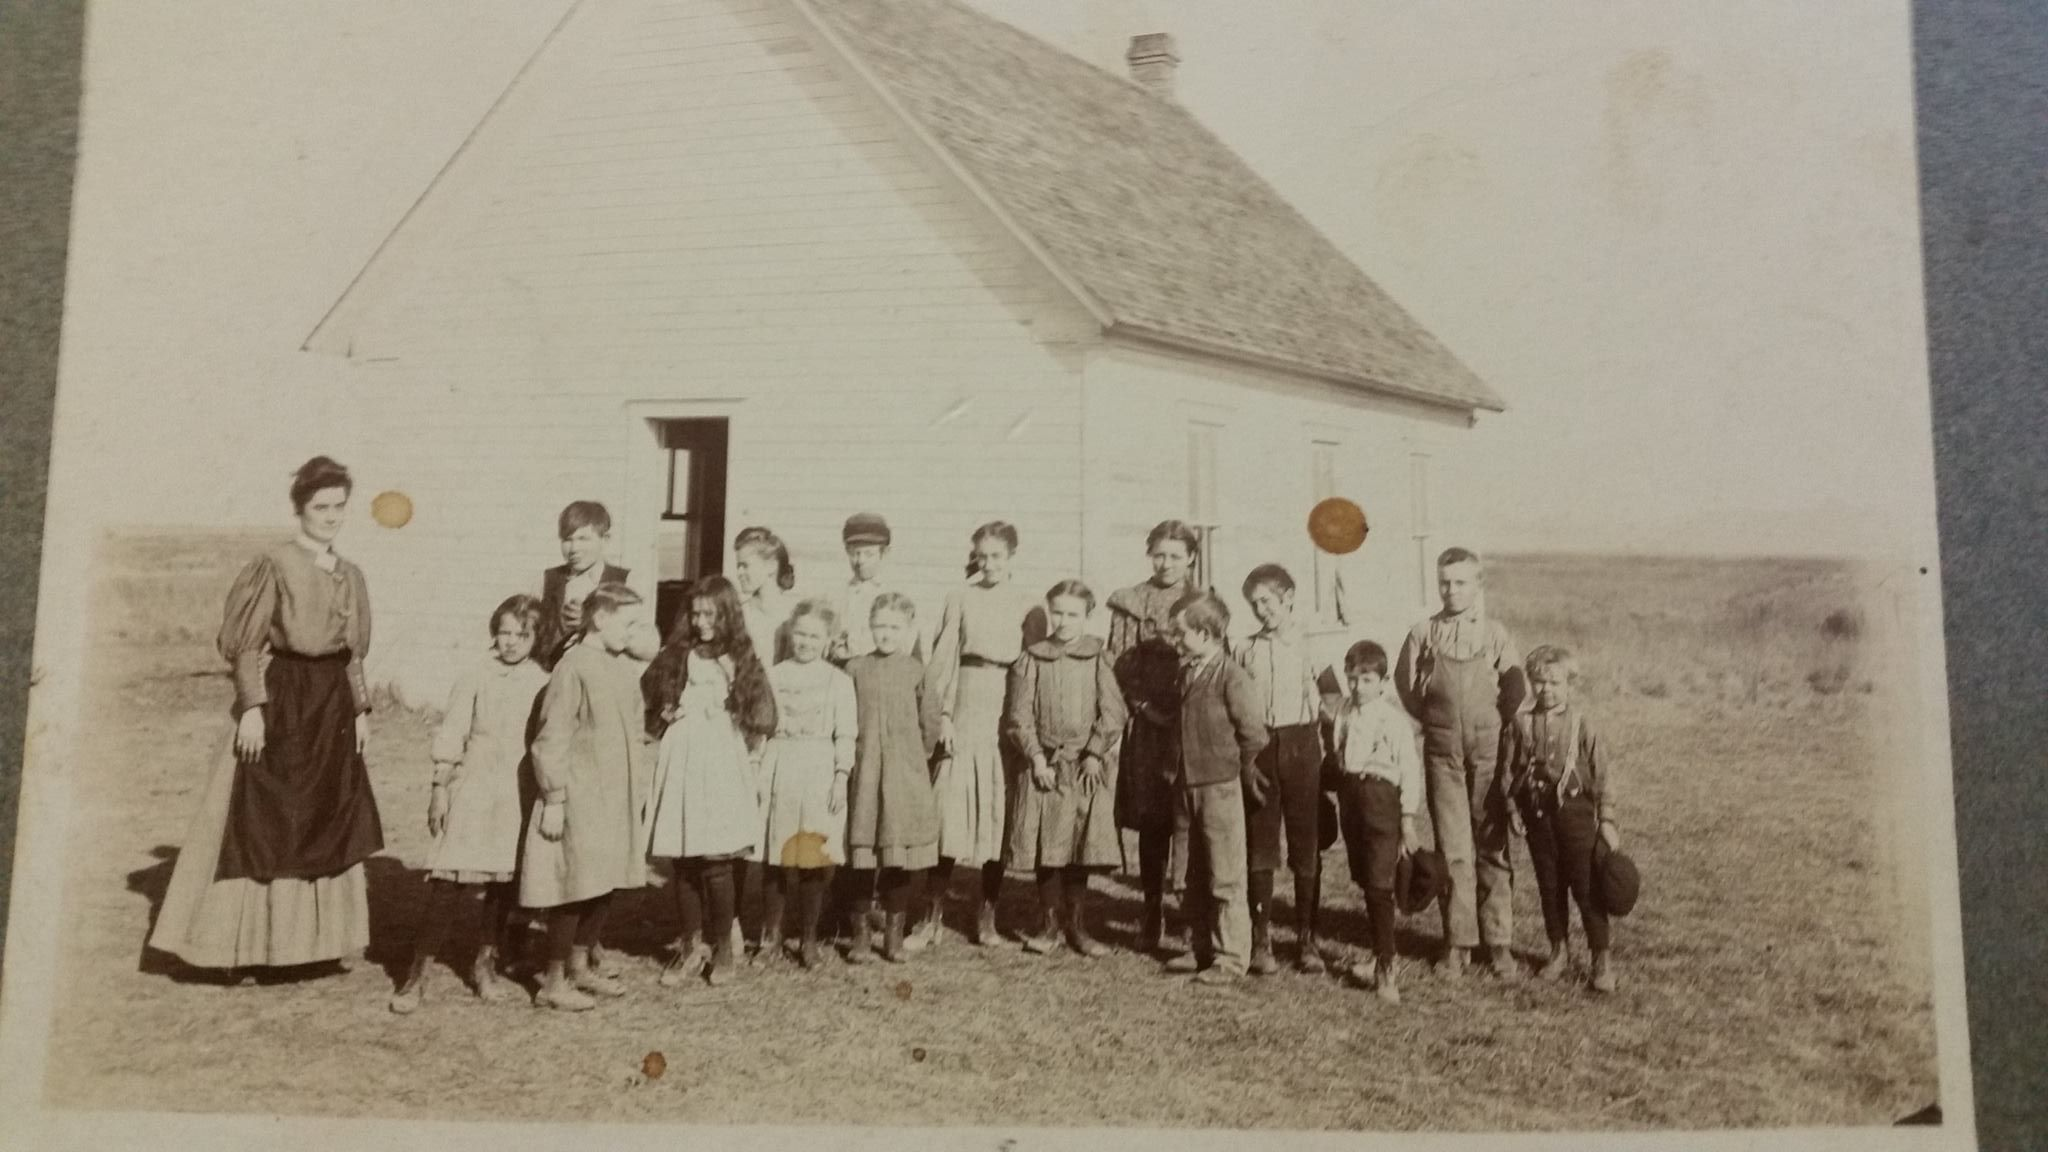 This is my great-grandmother, with her students in 1906. She stayed during the dust bowl, too. Oklahoma teachers are made of pretty tough stuff, and we are finding out just HOW tough.